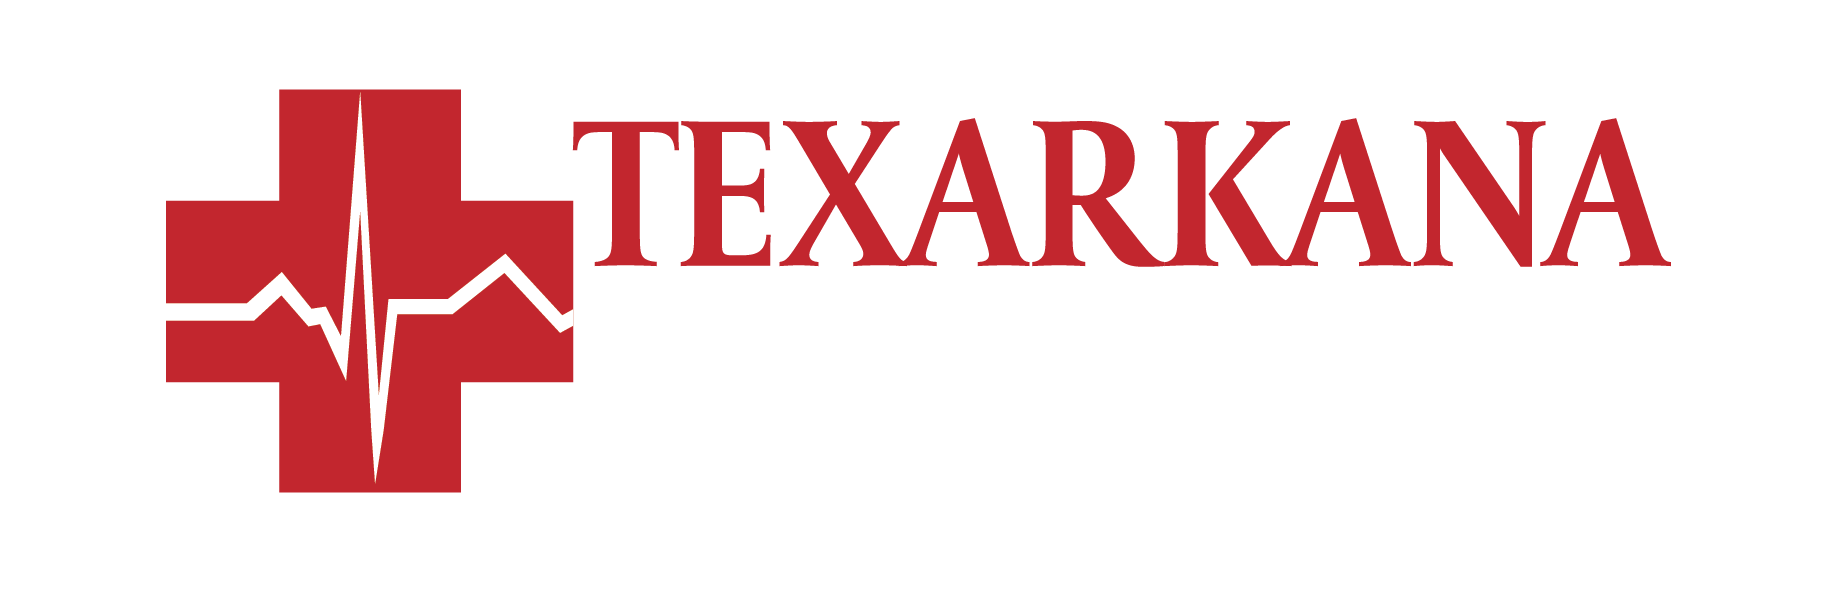 Texarkana Emergency Center & Hospital